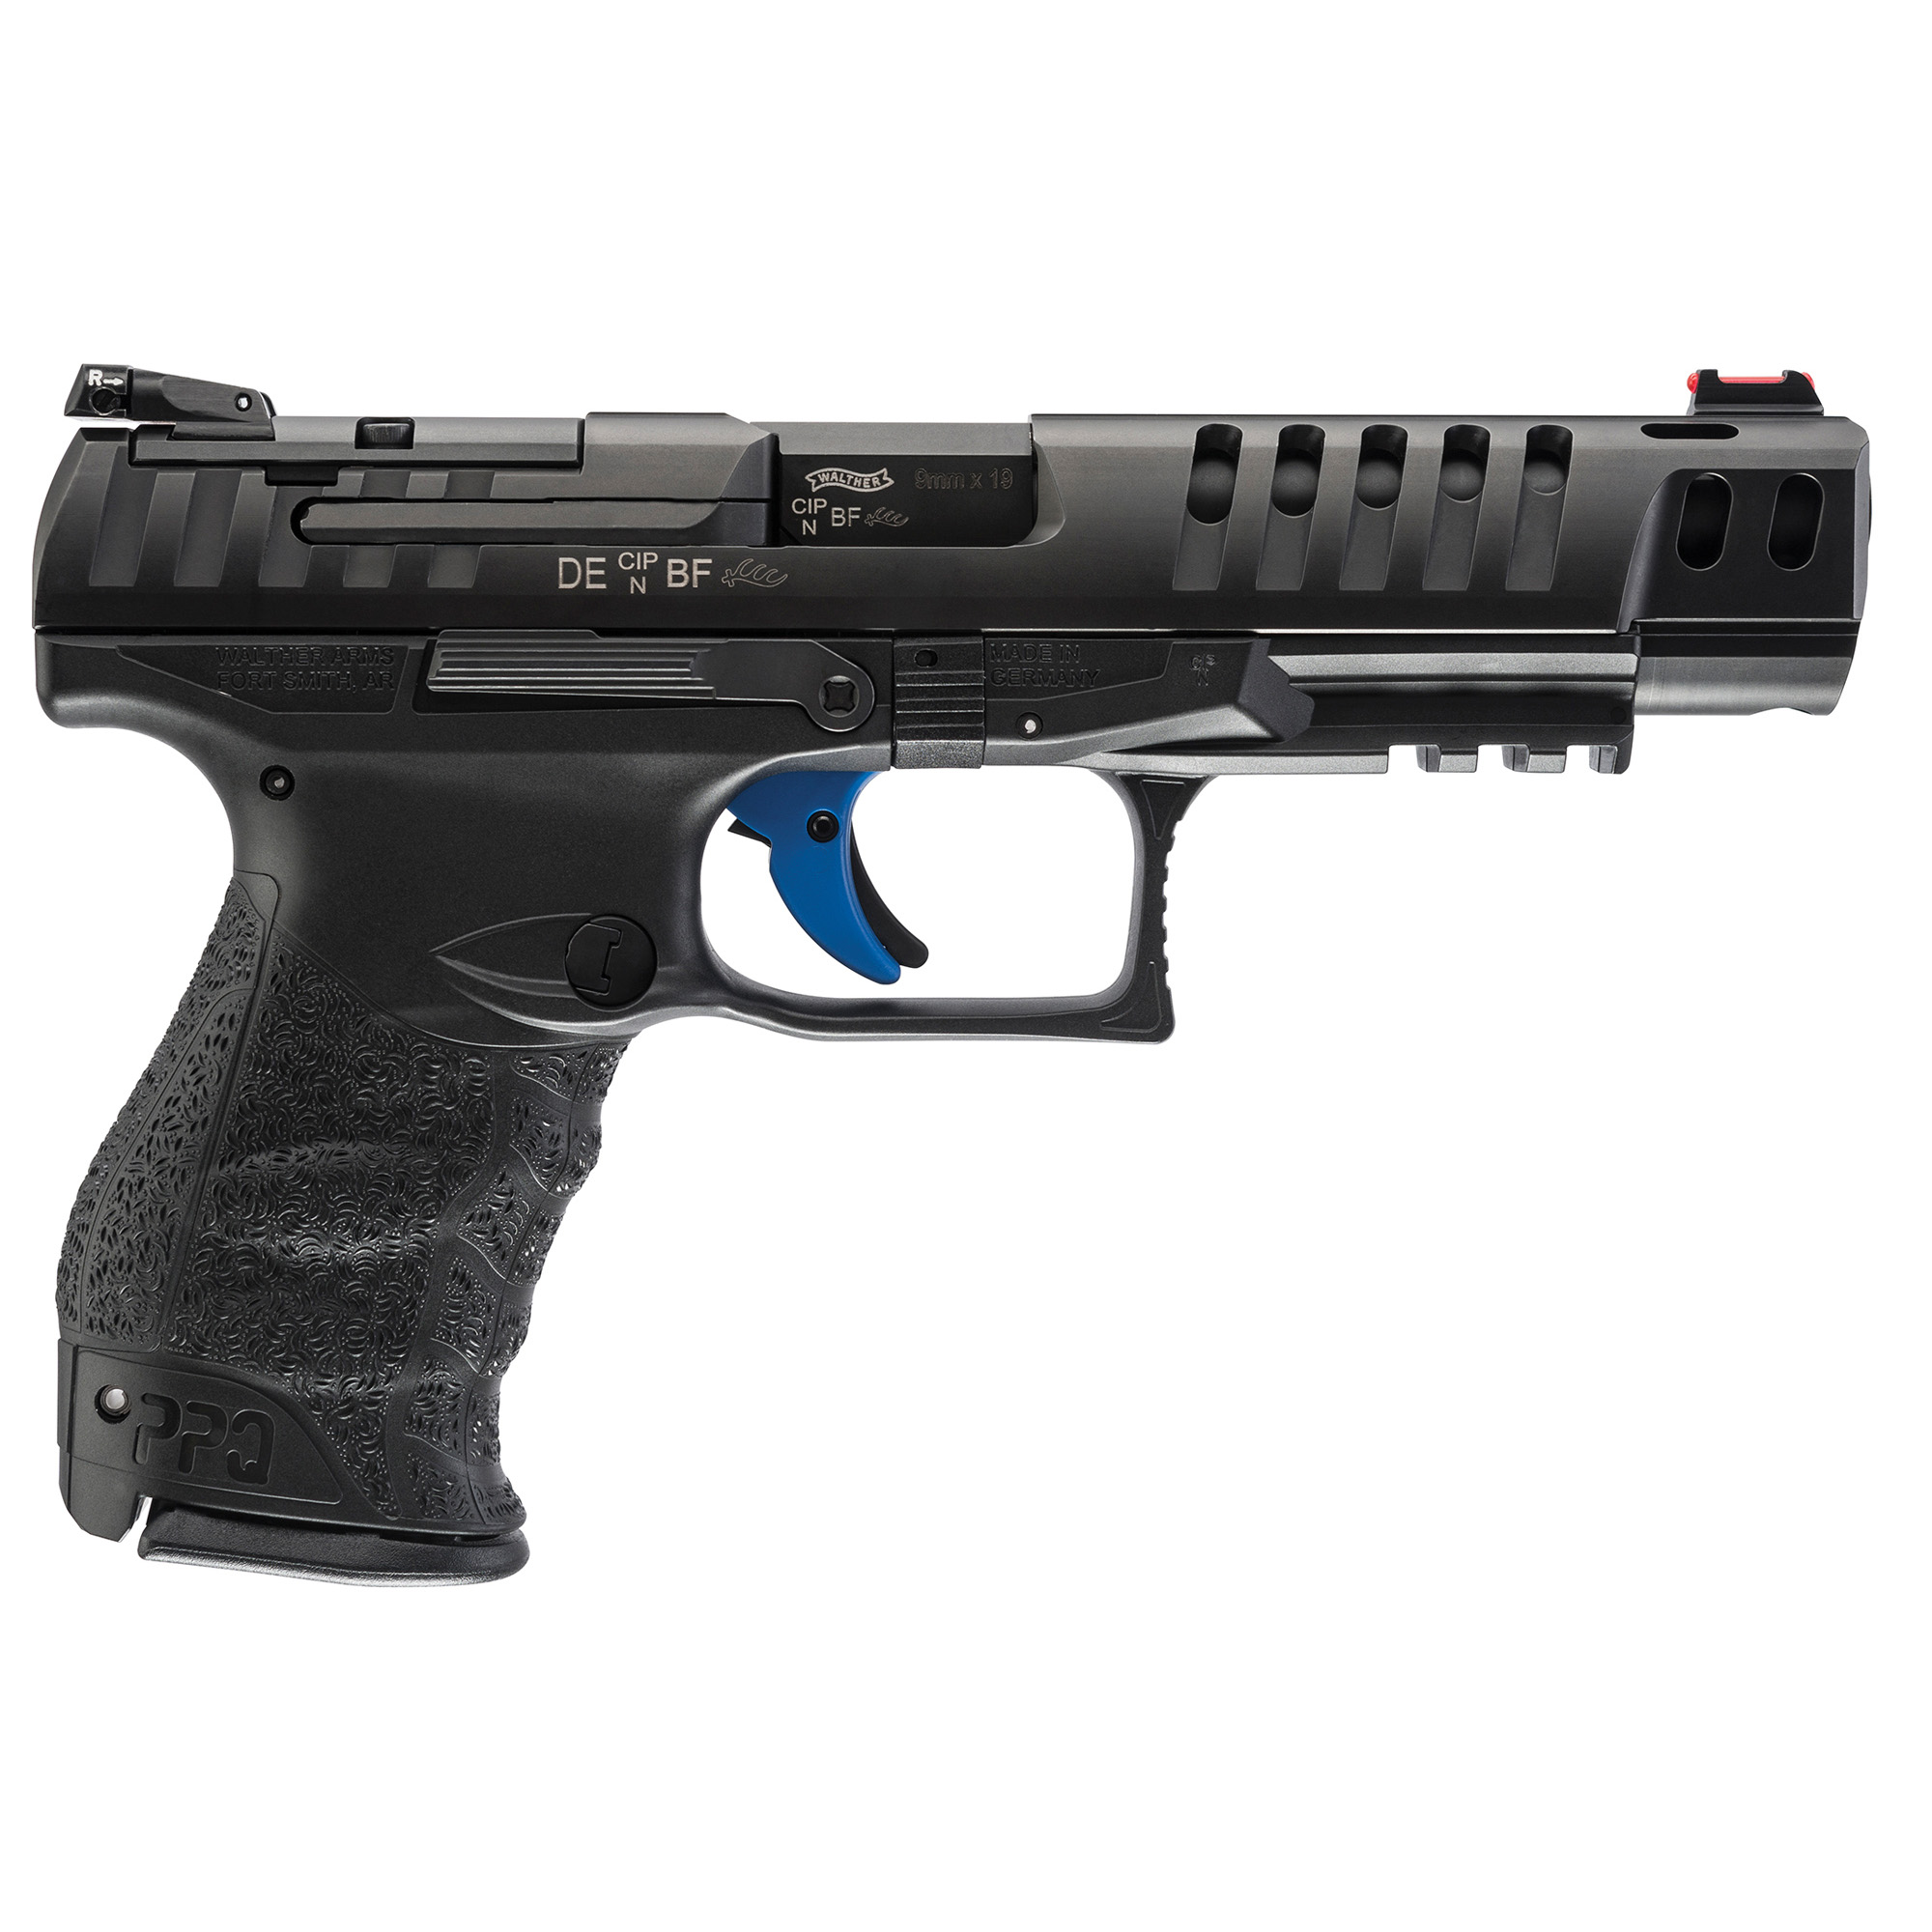 "<BODY><P STYLE=""FONT-FAMILY:ARIAL;""><P ALIGN=""LEFT""> Walther<br> Model:Q5<br> Action: S/A<br> Caliber: .9mml<br> Barrel Length: 5""<br> Finish/Color: Matte<br> Sights: Fixed<br> Capacity: 5Rd<br>Adjustable Rear Sight, Fiber Optic Front <br>Adjustable Rear Sight, Fiber Optic Front, 10Rd, 3 Magazines <H1 STYLE=""COLOR:GREEN"">$799.95</H1></P></BODY></HTML>"